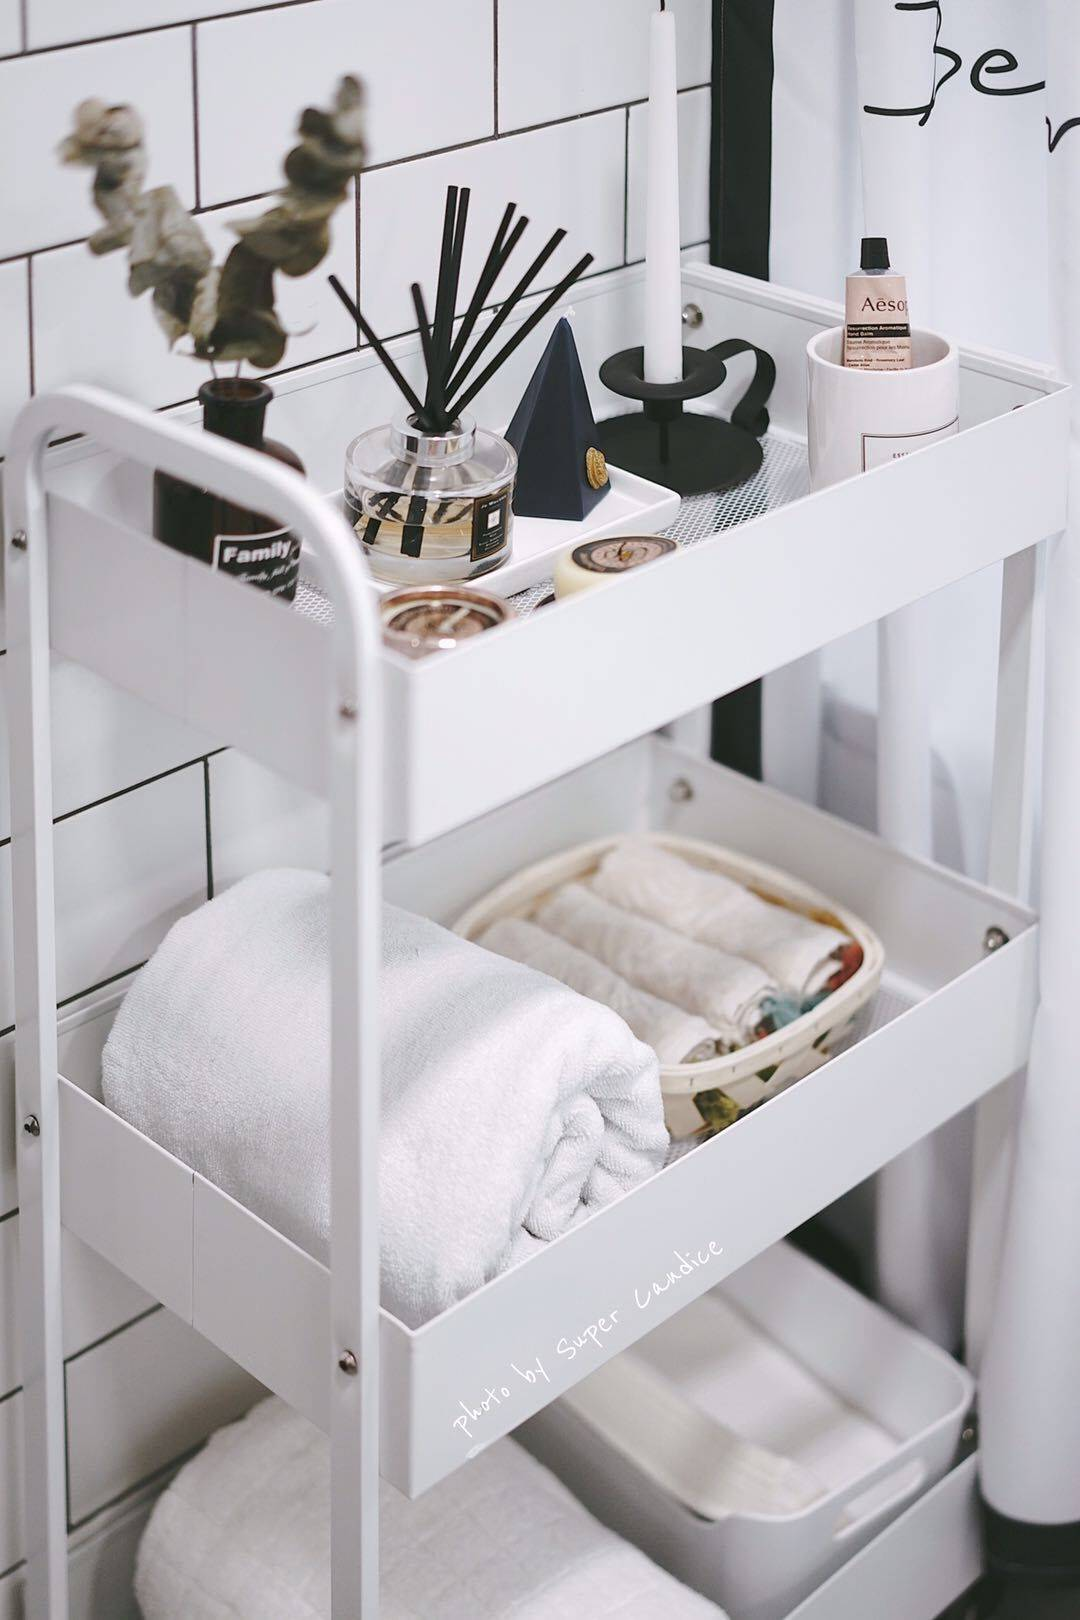 Kitchen shelf floor mobile household goods storage rack trolley slit vegetable storage hot selling